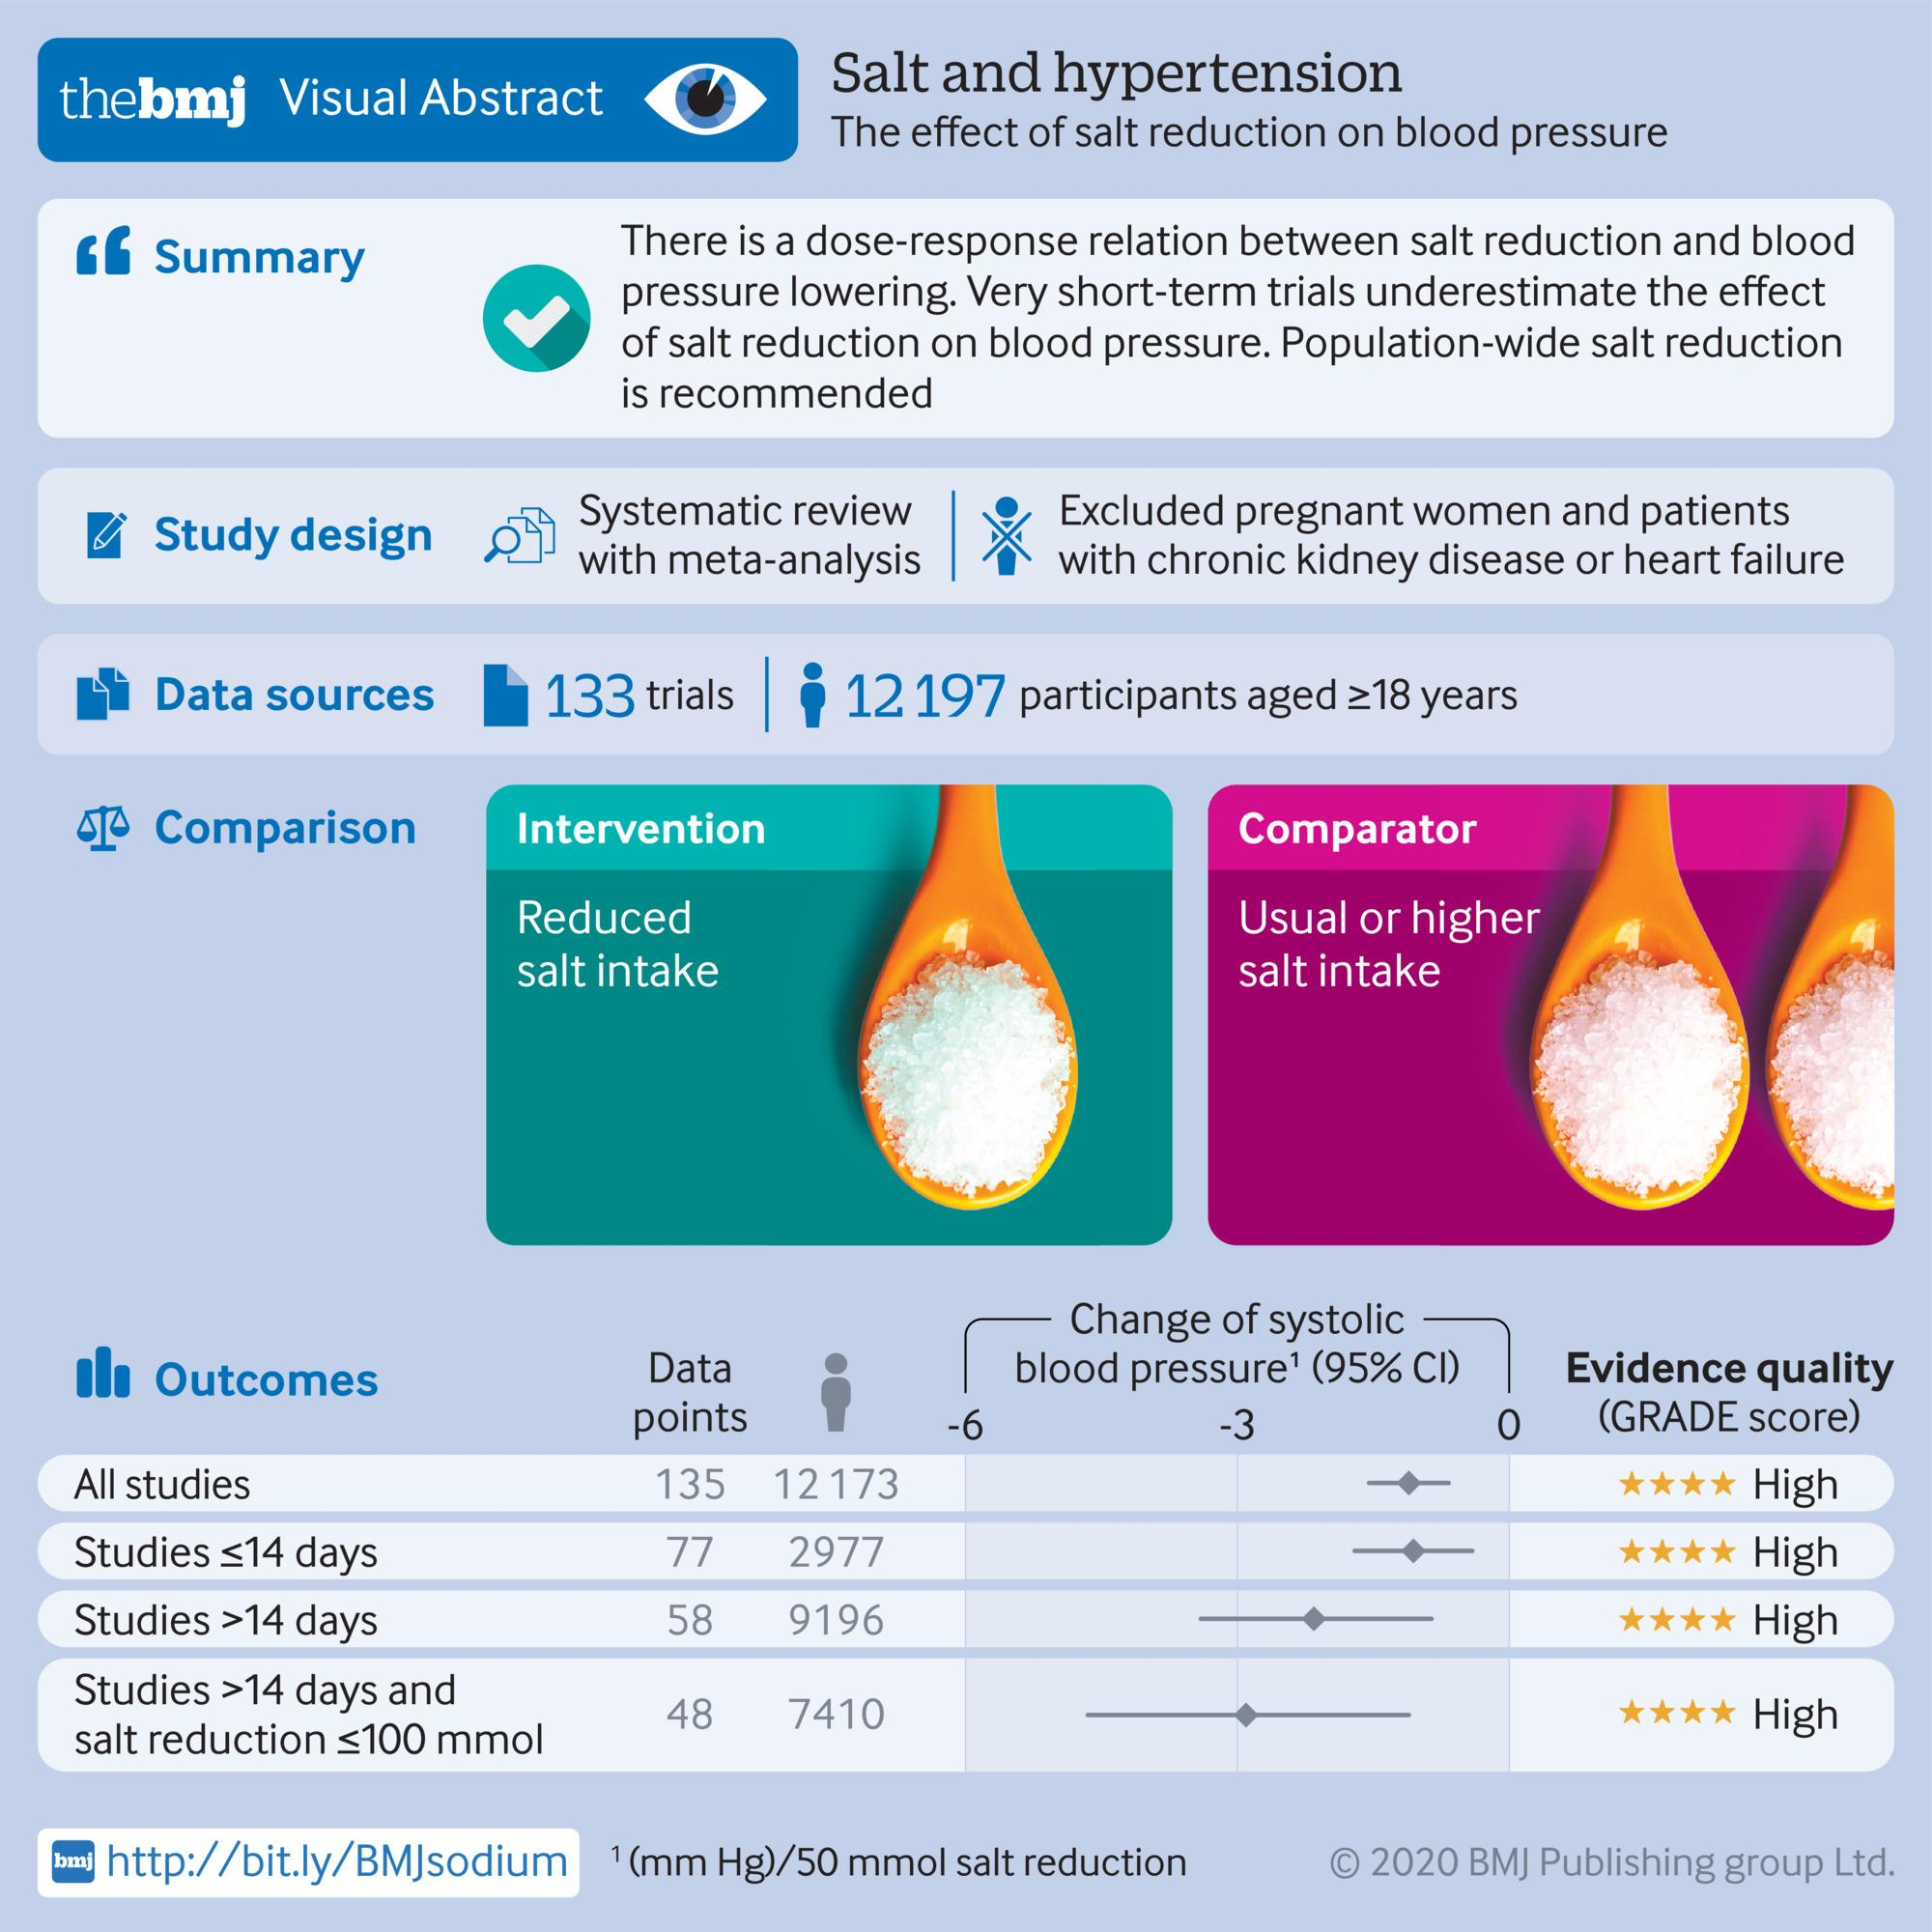 Visual abstract titled Salt and hypertension: The effect of salt reduction on blood pressure